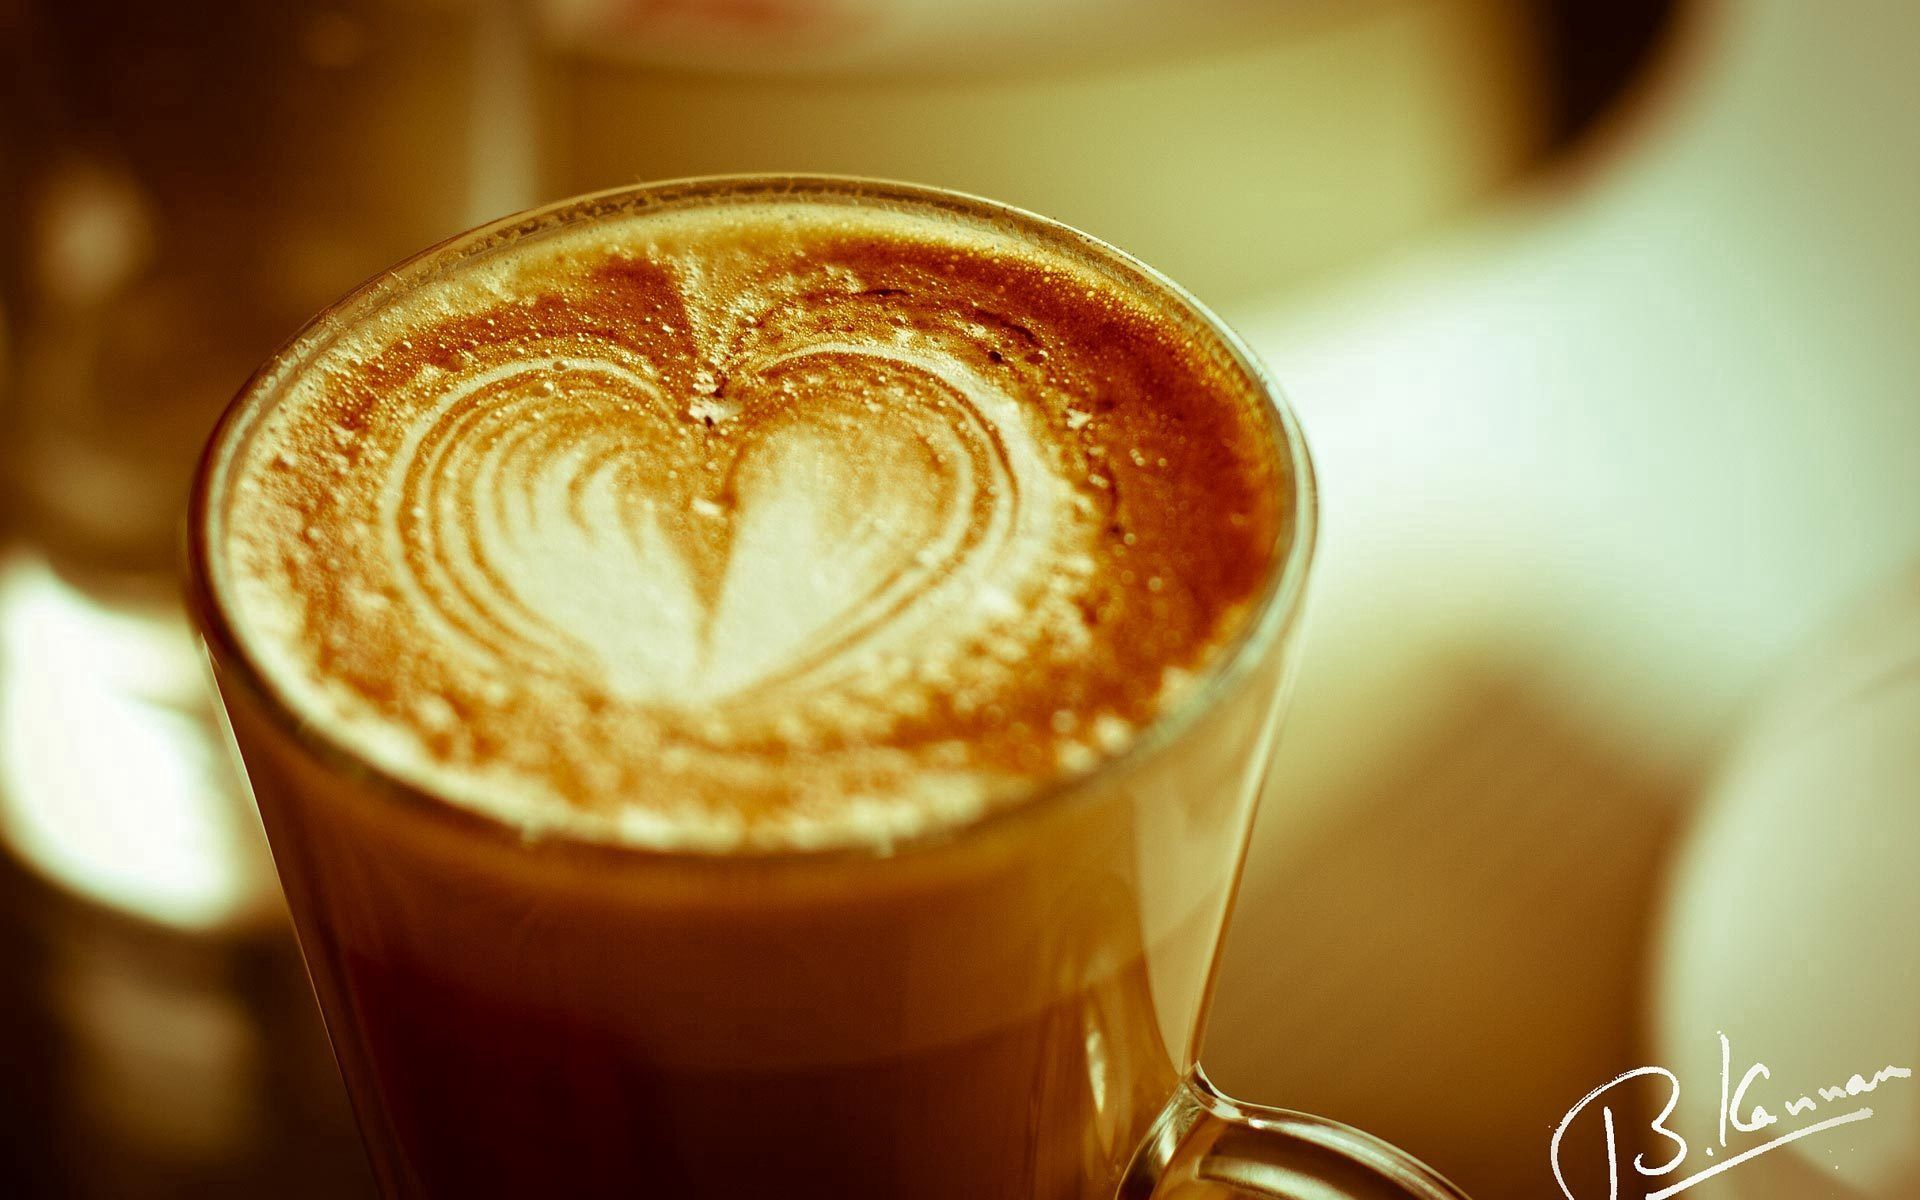 144625 download wallpaper Food, Coffee, Heart, Confession, Foam, Meerschaum, Signature screensavers and pictures for free